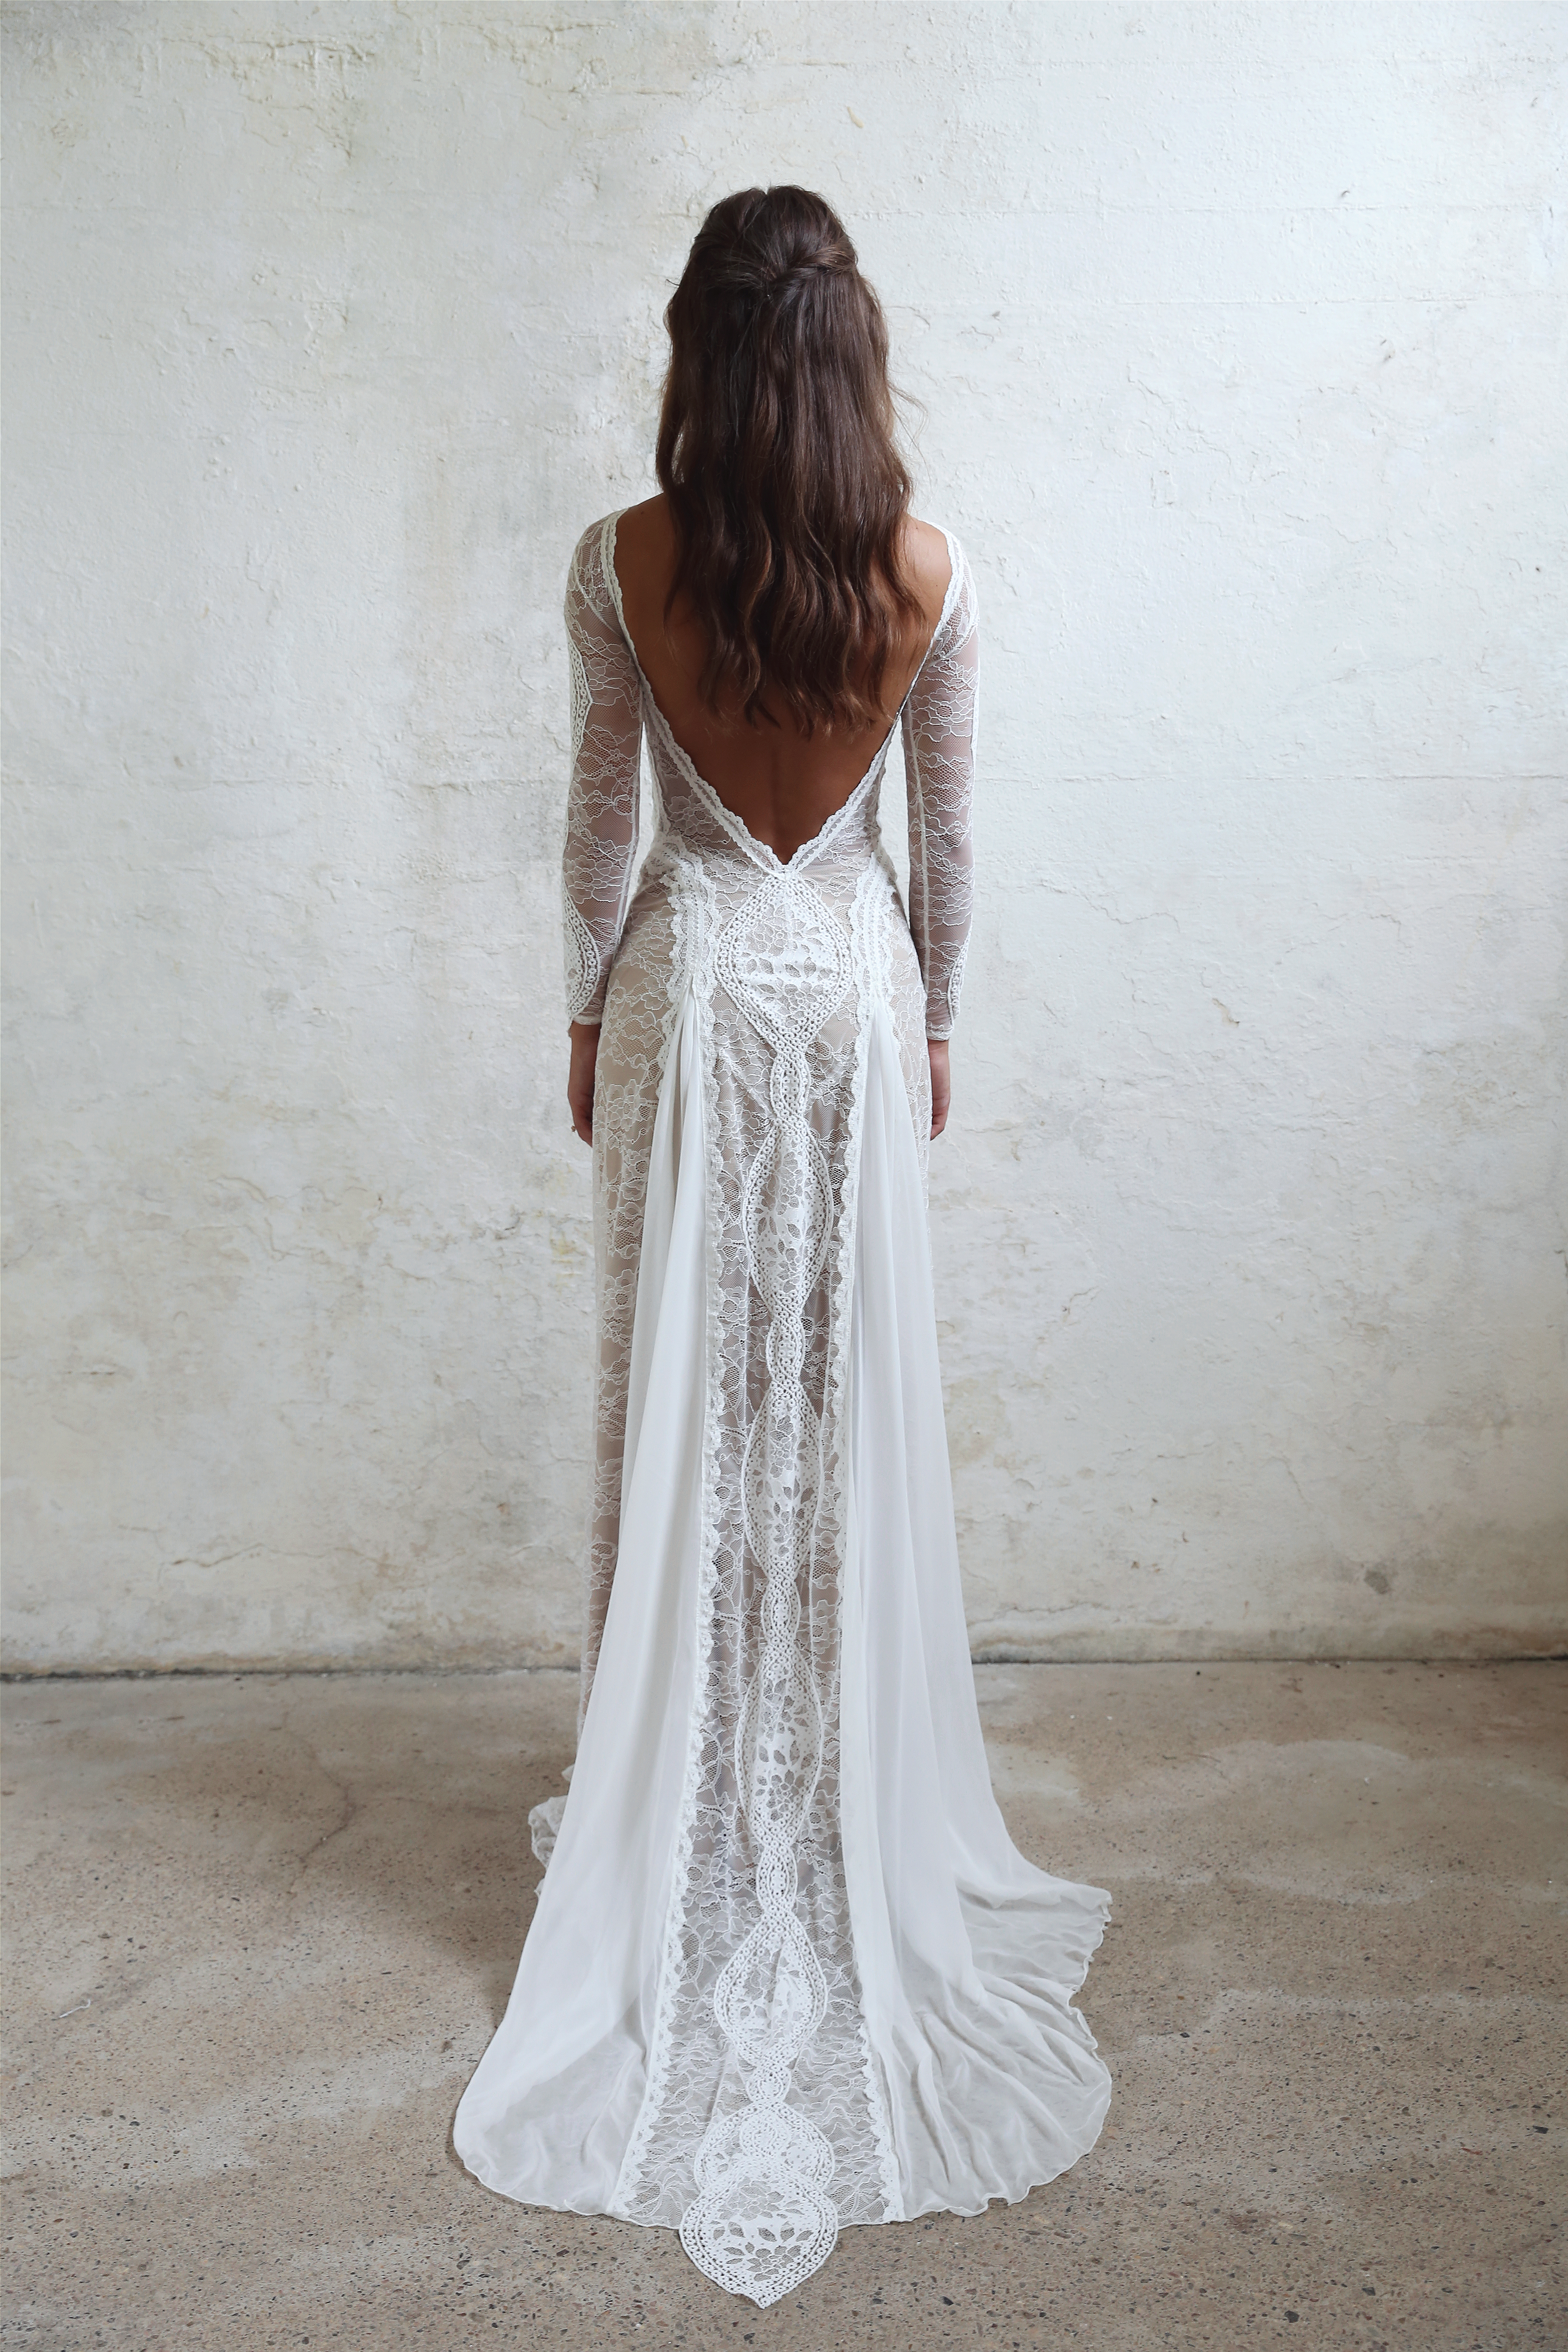 gold coast bridal wear, boho wedding dresses, gold coast wedding dresses, bohemian wedding dress, gold coast tipis, grace loves lace